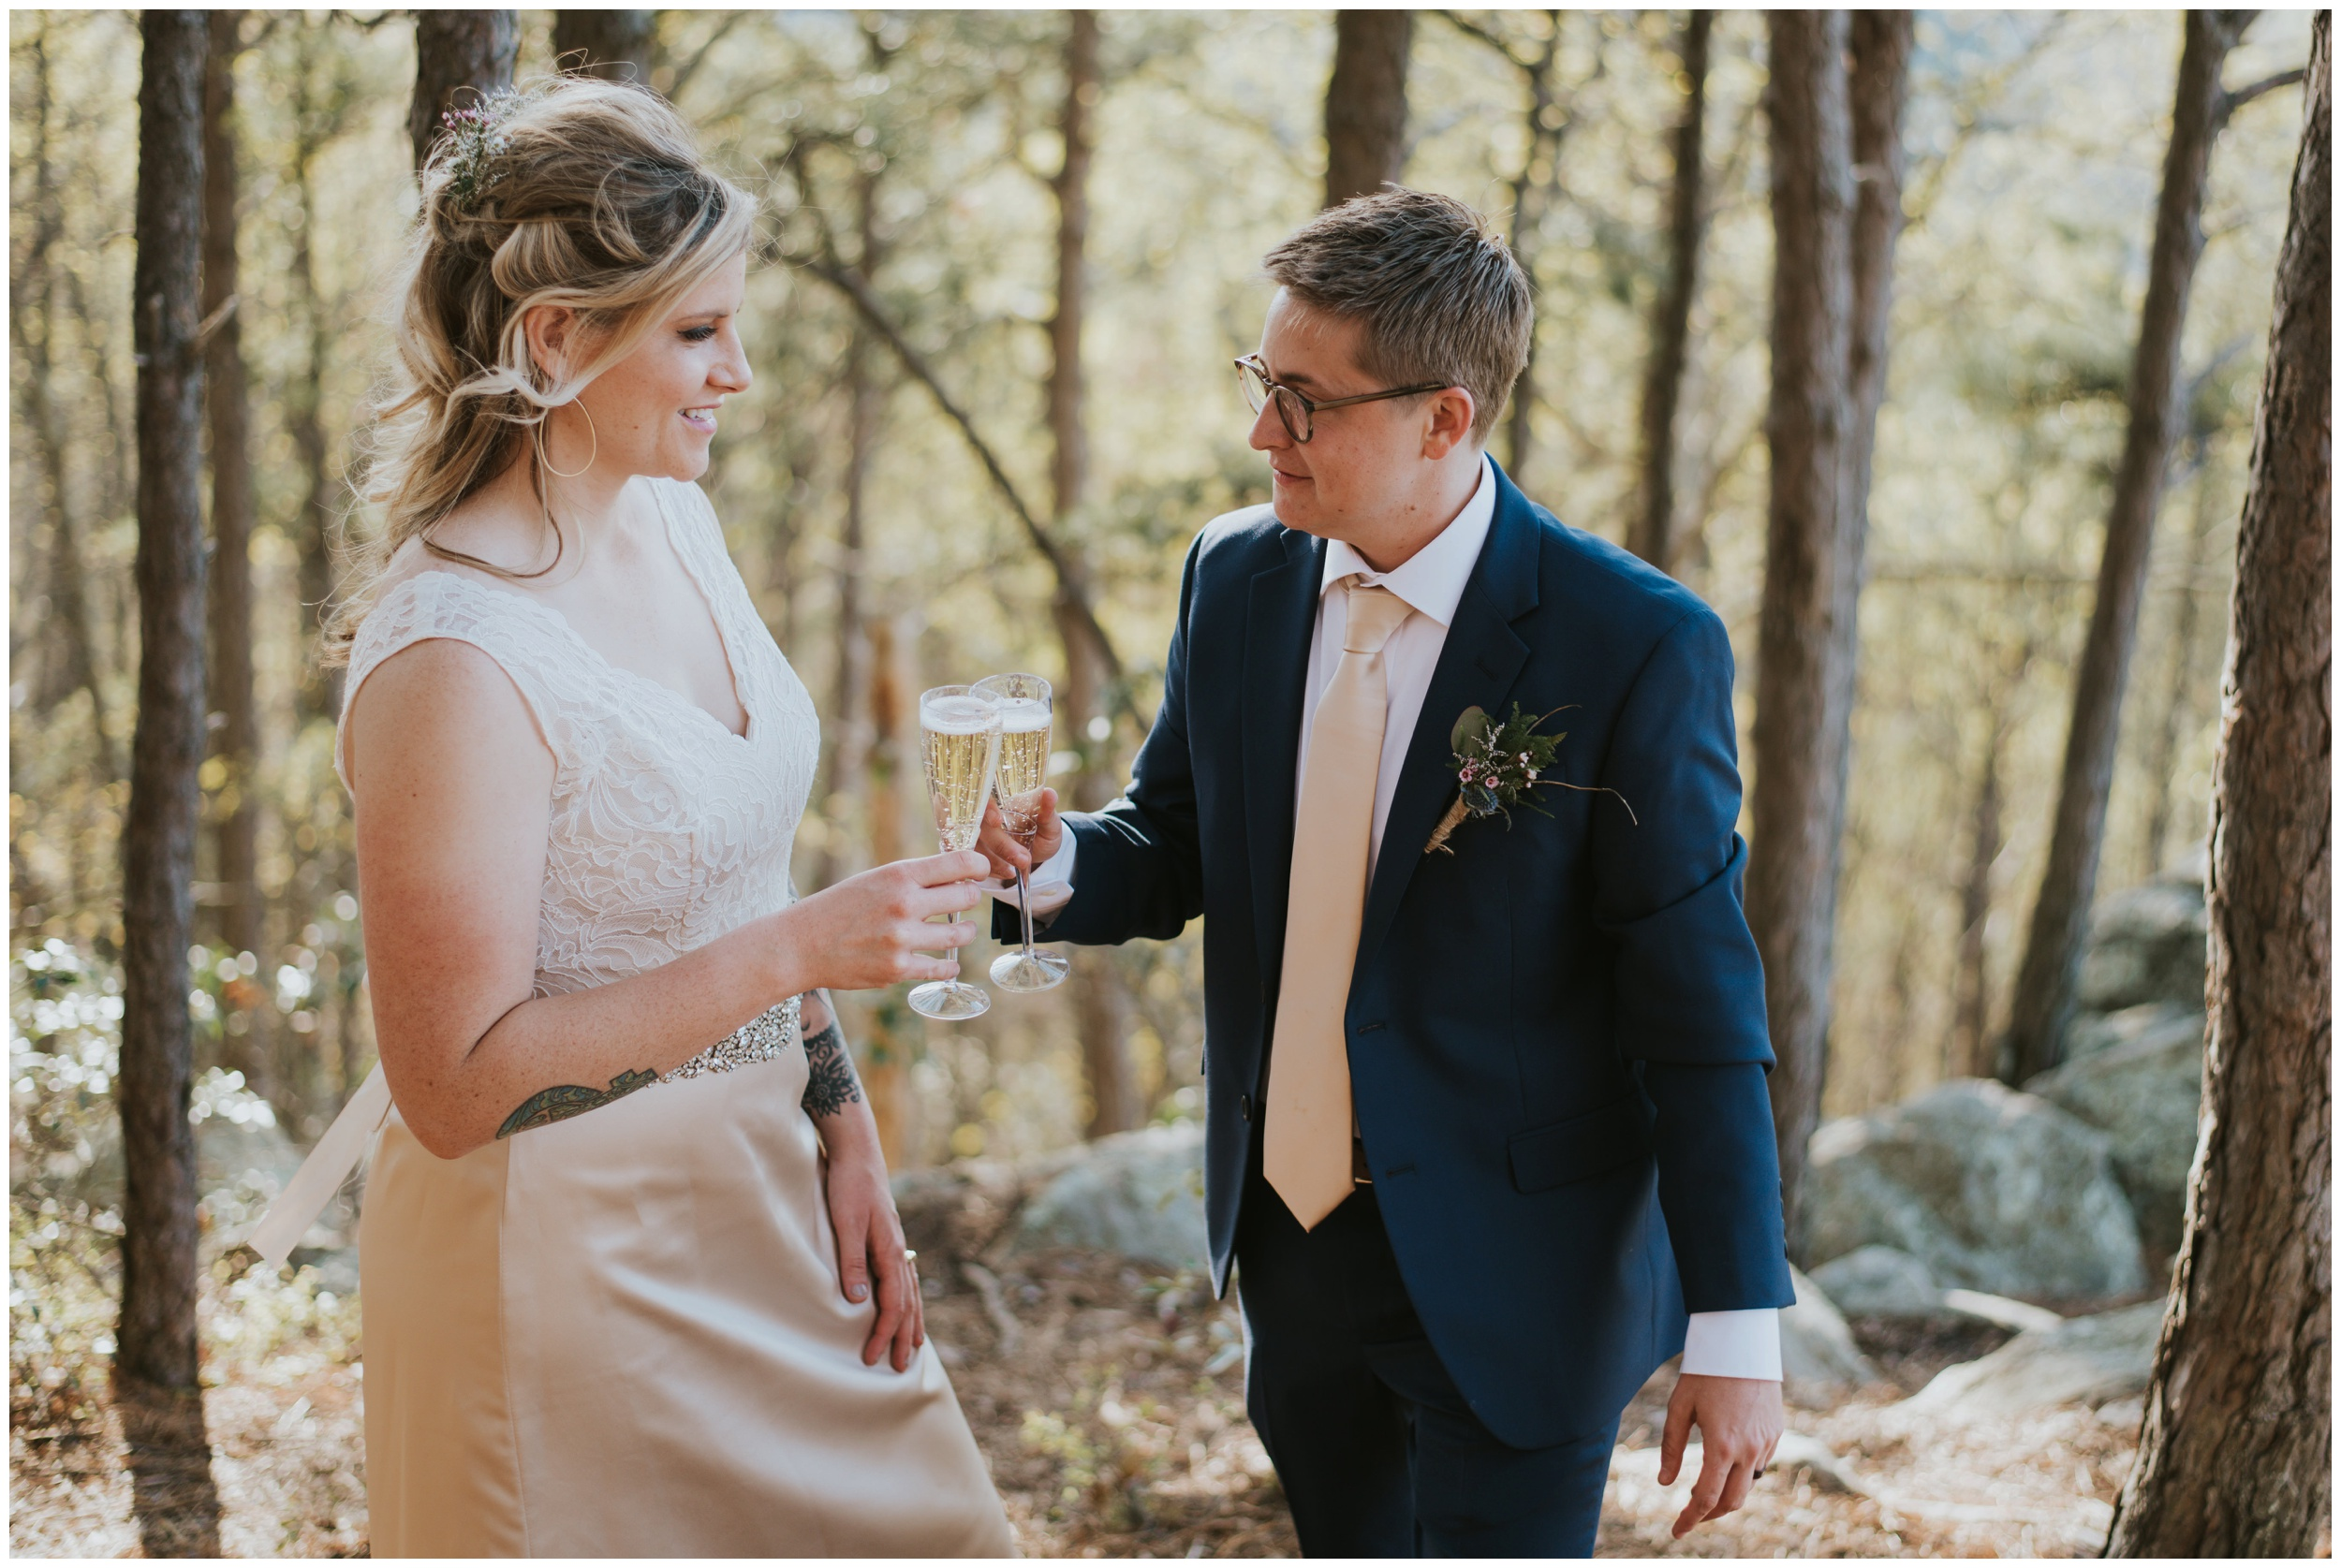 Cheers with champagne woodsy elopement  | www.riversandroadsphotography.com